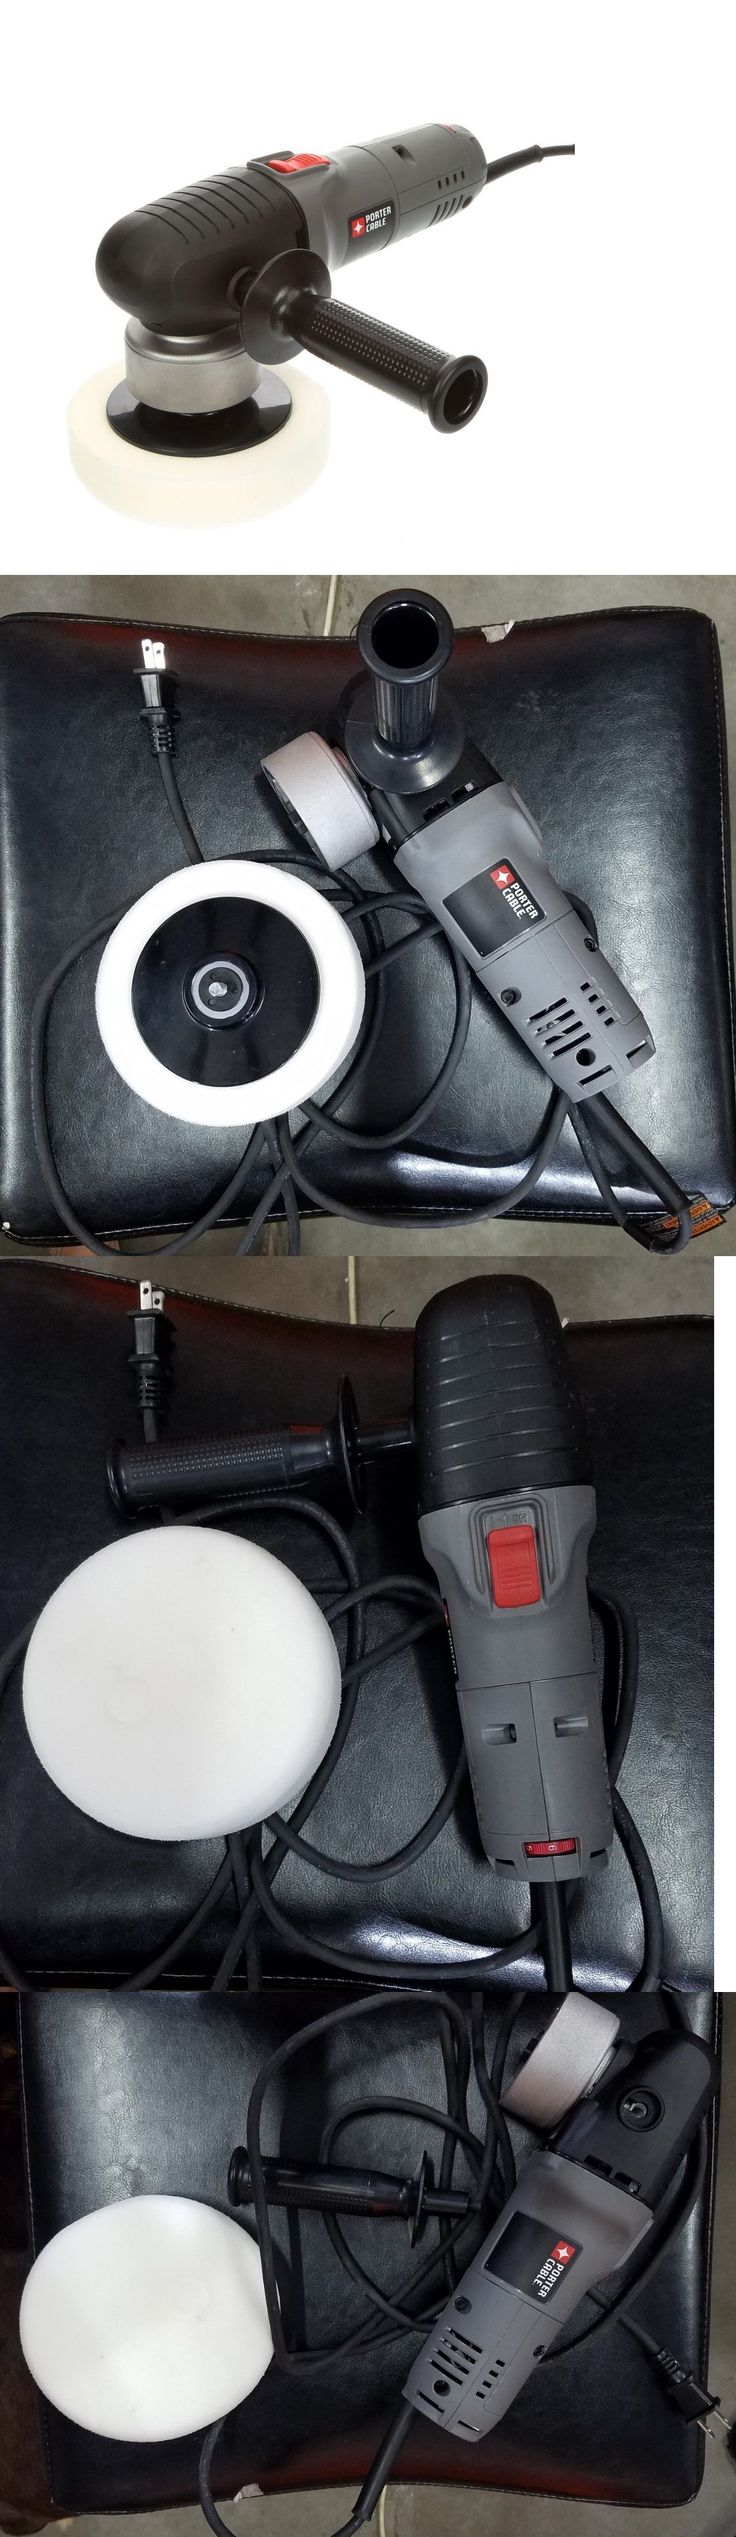 Buffers and Polishers 42266: Porter Cable 6 Variable Speed Random Orbit Polisher 7424Xp -> BUY IT NOW ONLY: $114 on eBay!